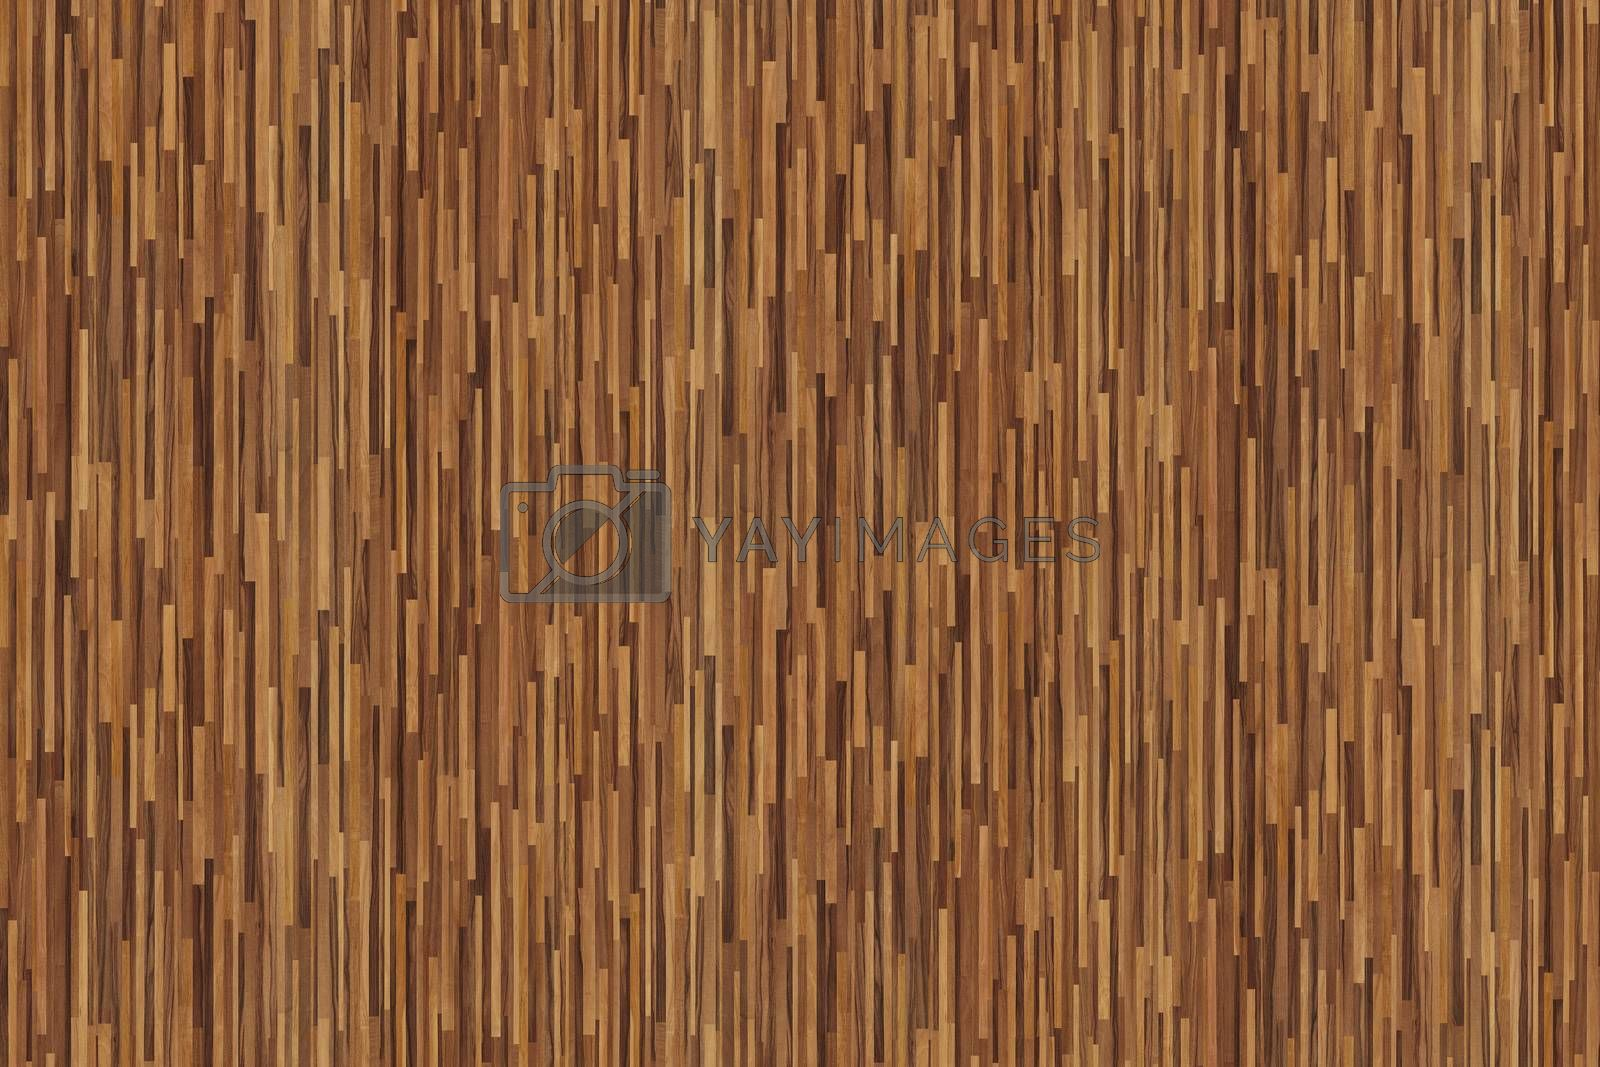 Wood texture with natural patterns, brown wooden texture. by ivo_13